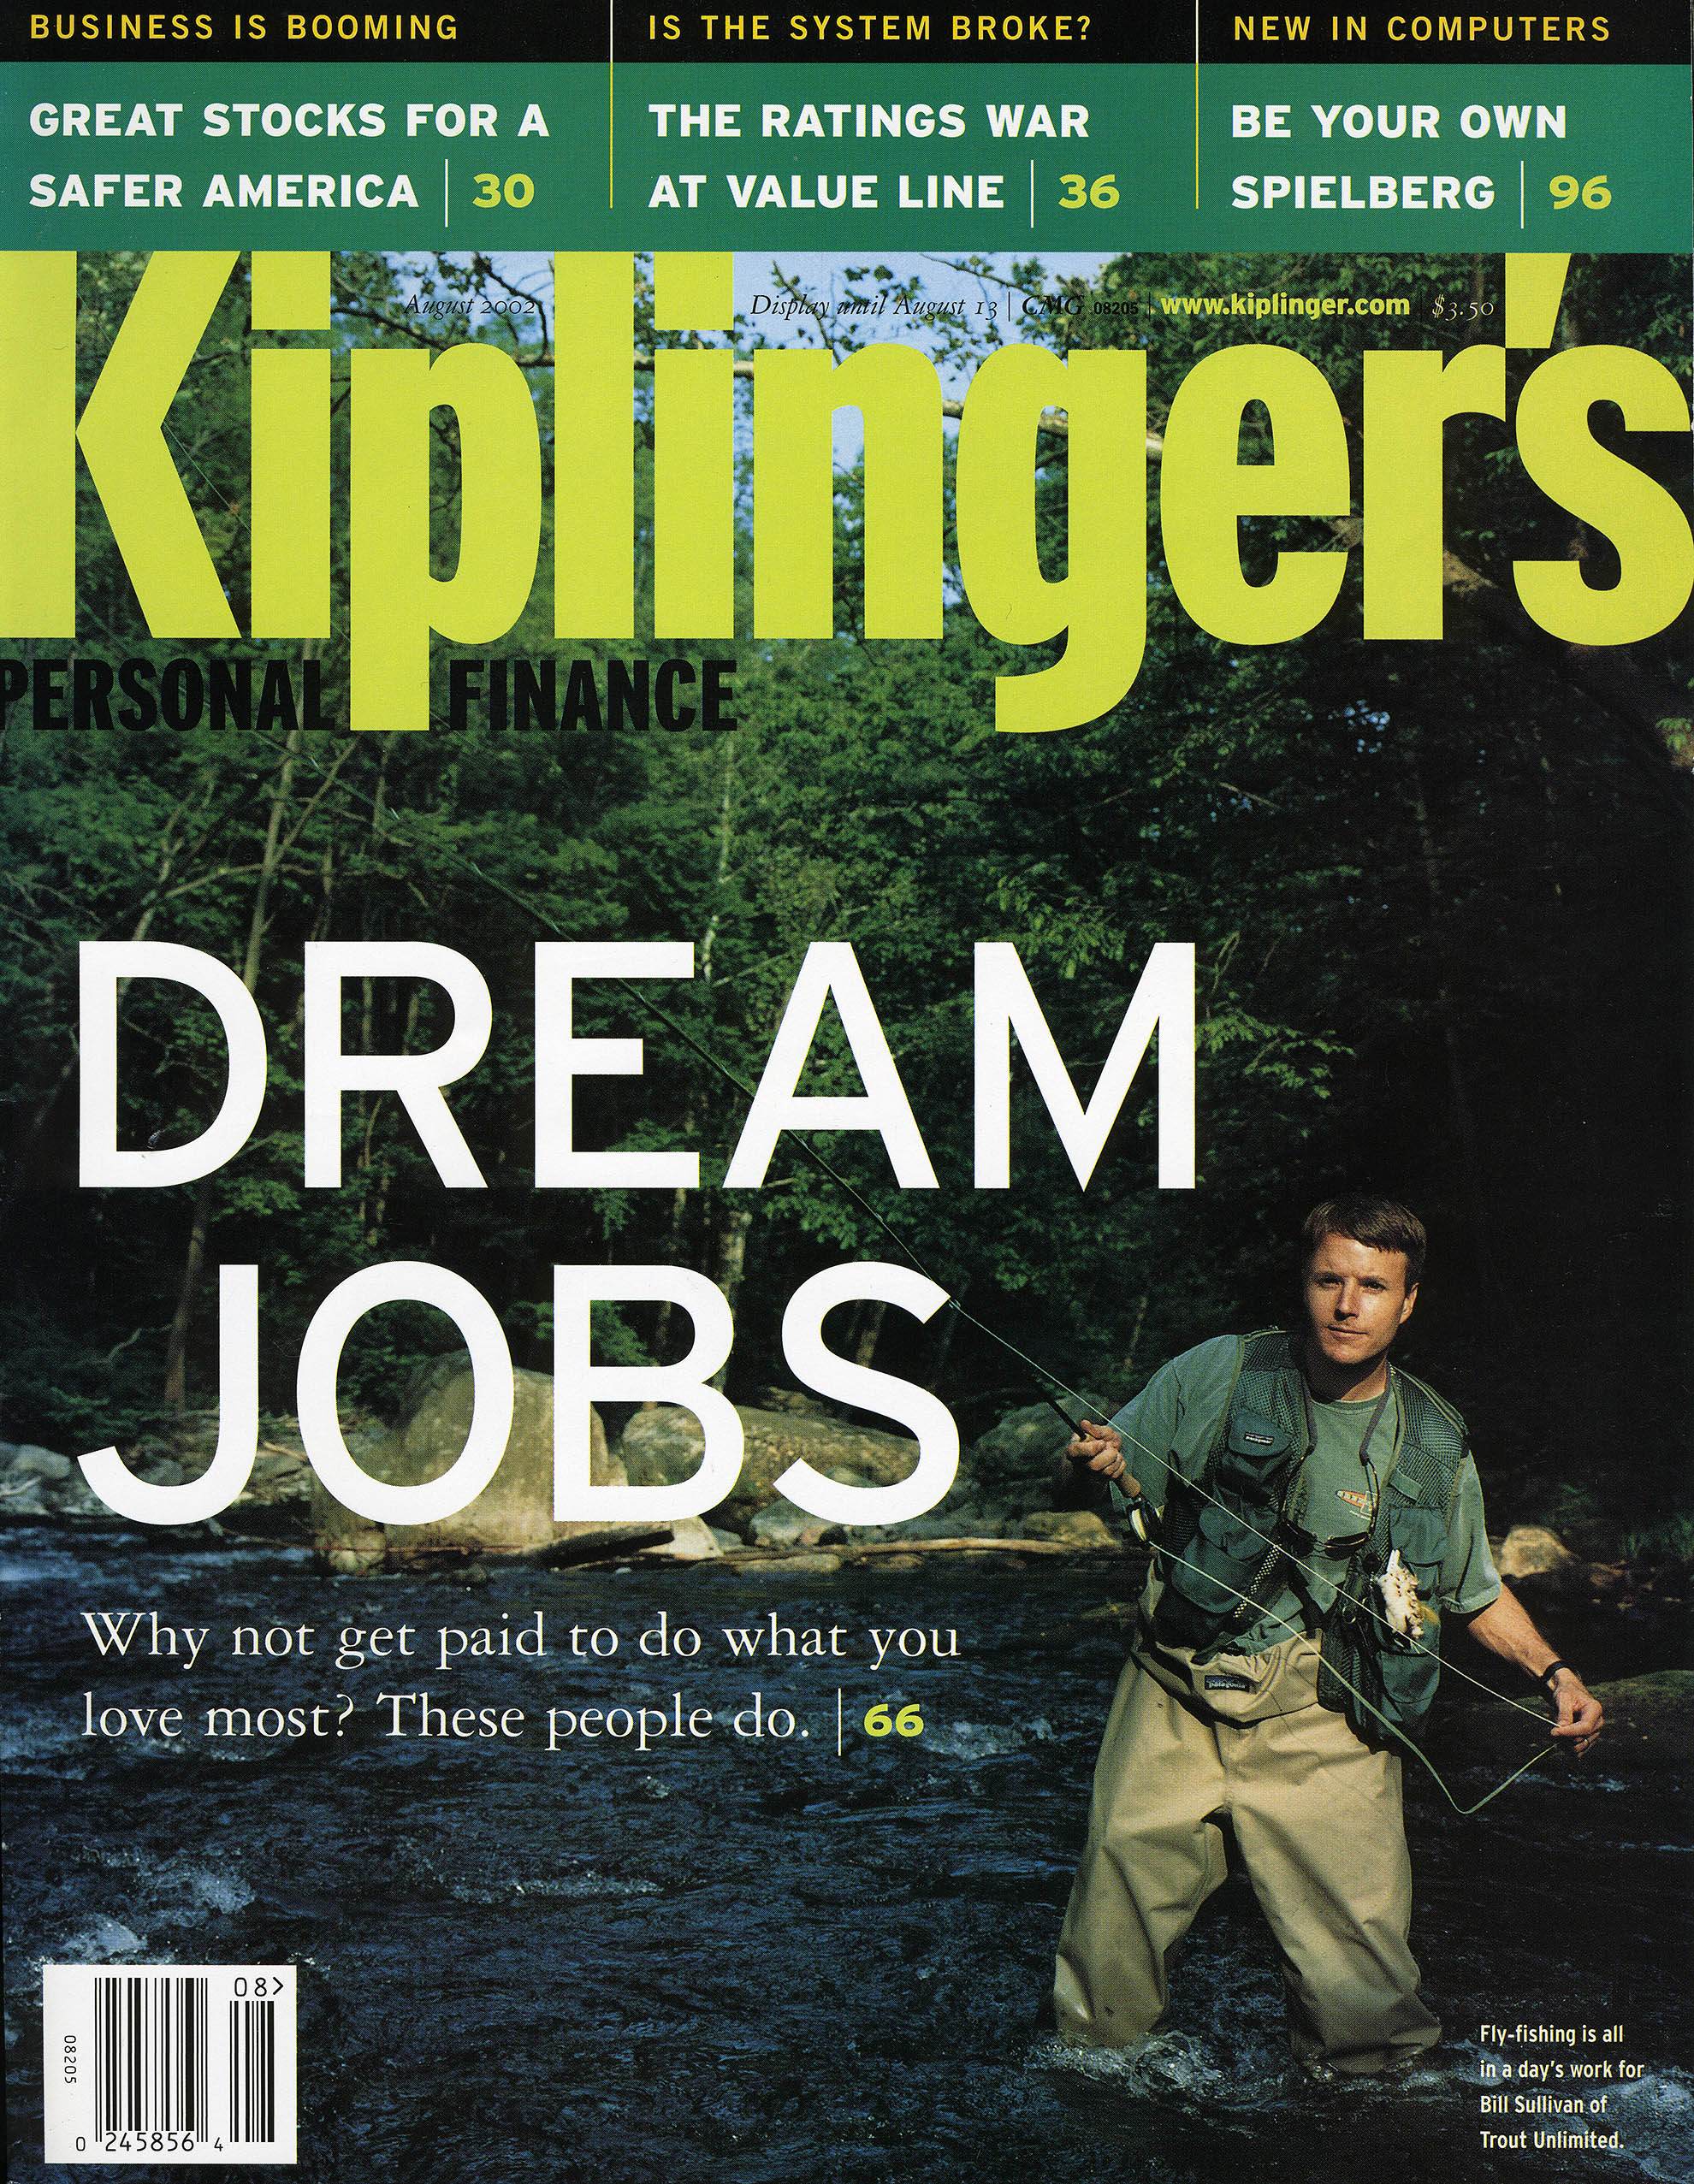 Trout Unlimited Marketing Director - Dream Job